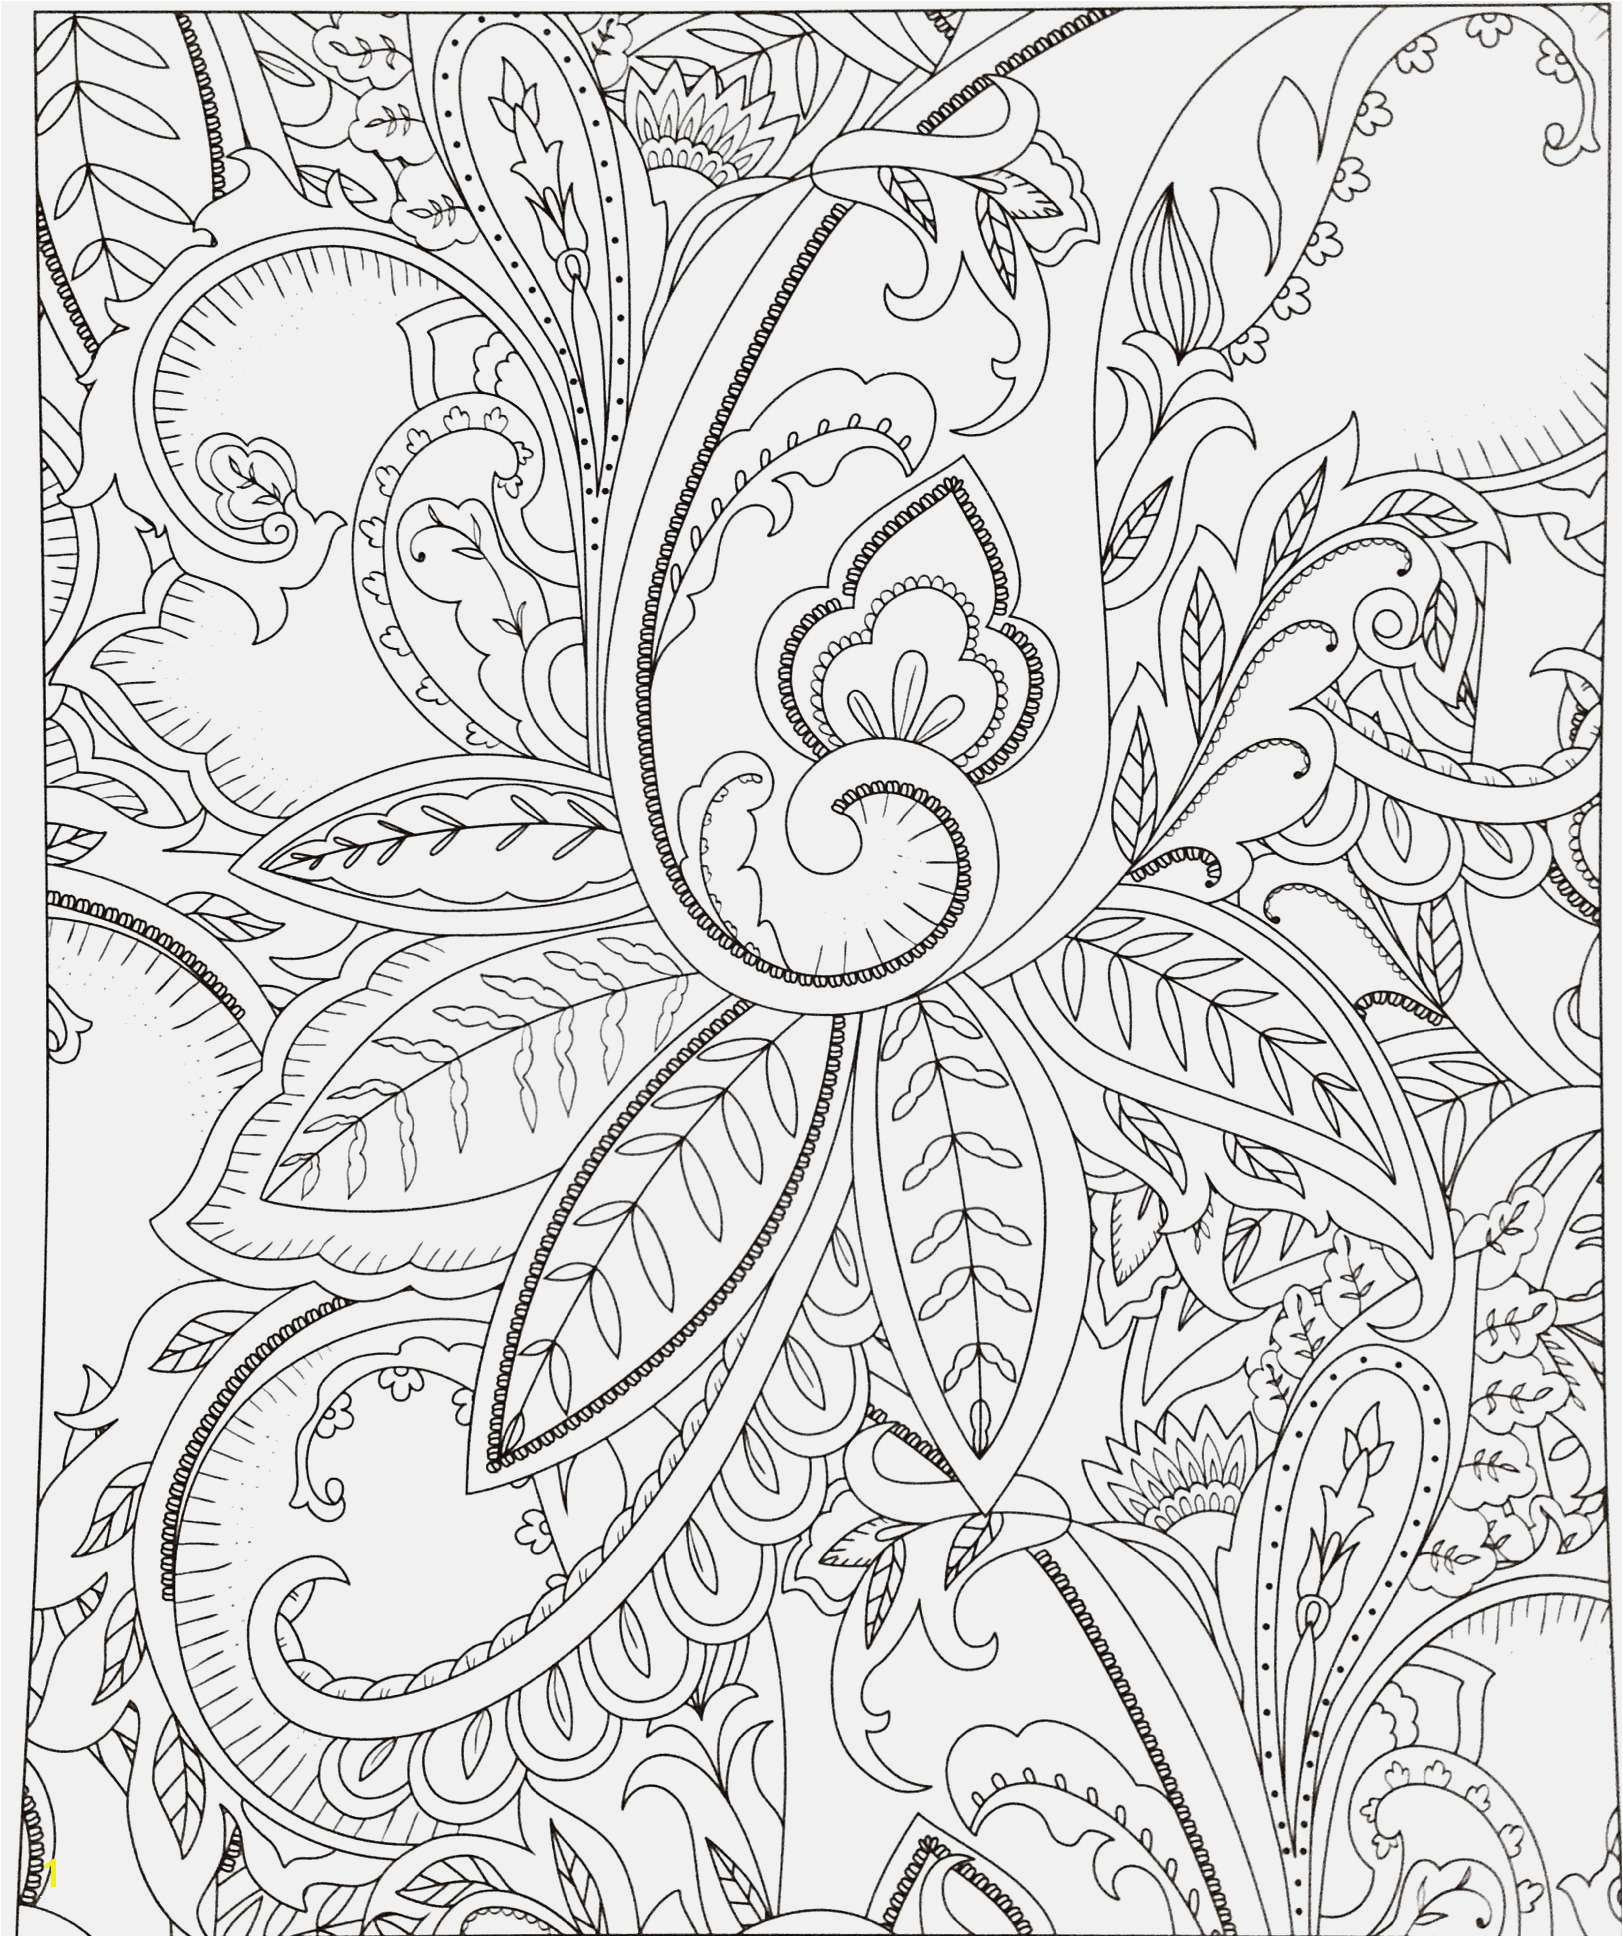 Difficult Coloring Pages Best Easy Very Difficult Coloring Pages Coloring Pages Coloring Pages Difficult Coloring